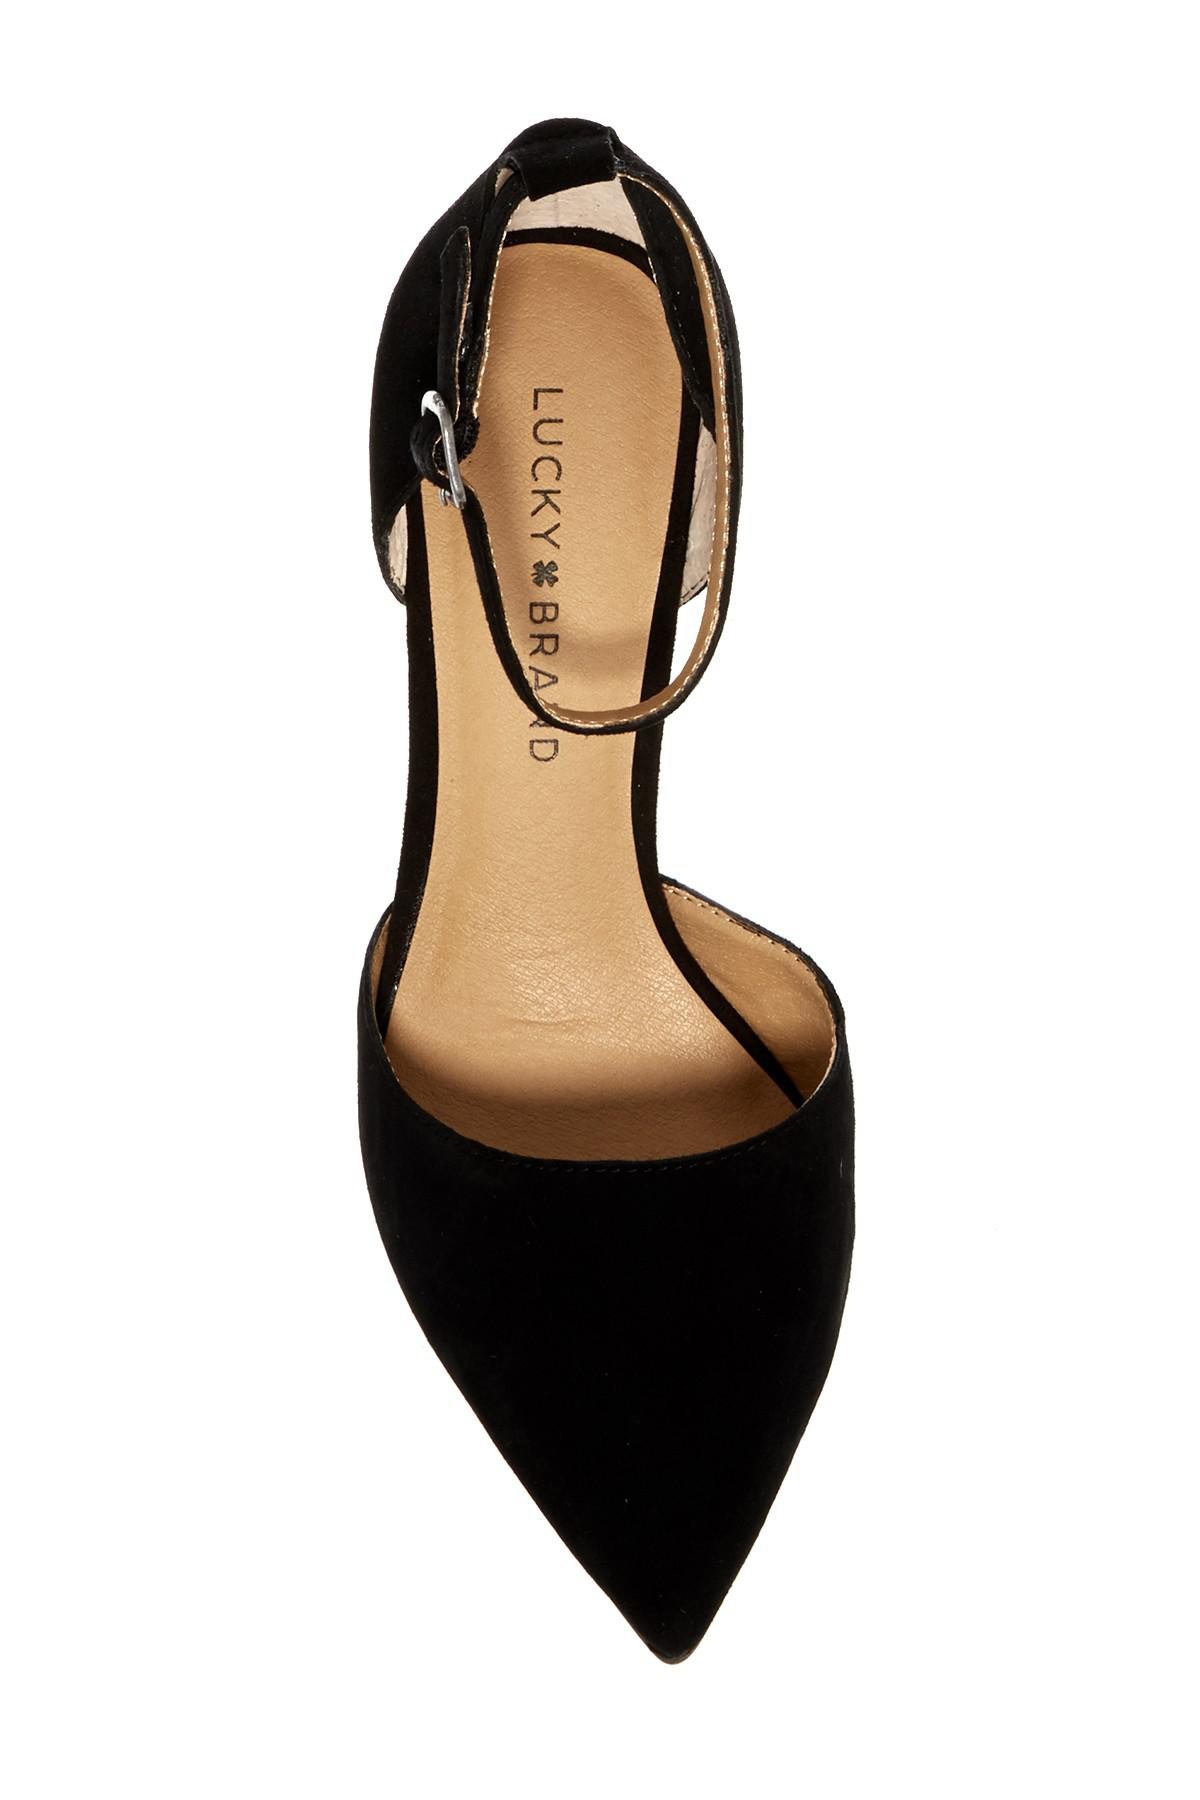 9f269cf7c5 Lucky Brand Tukko D'orsay Ankle Strap Pump in Black - Lyst